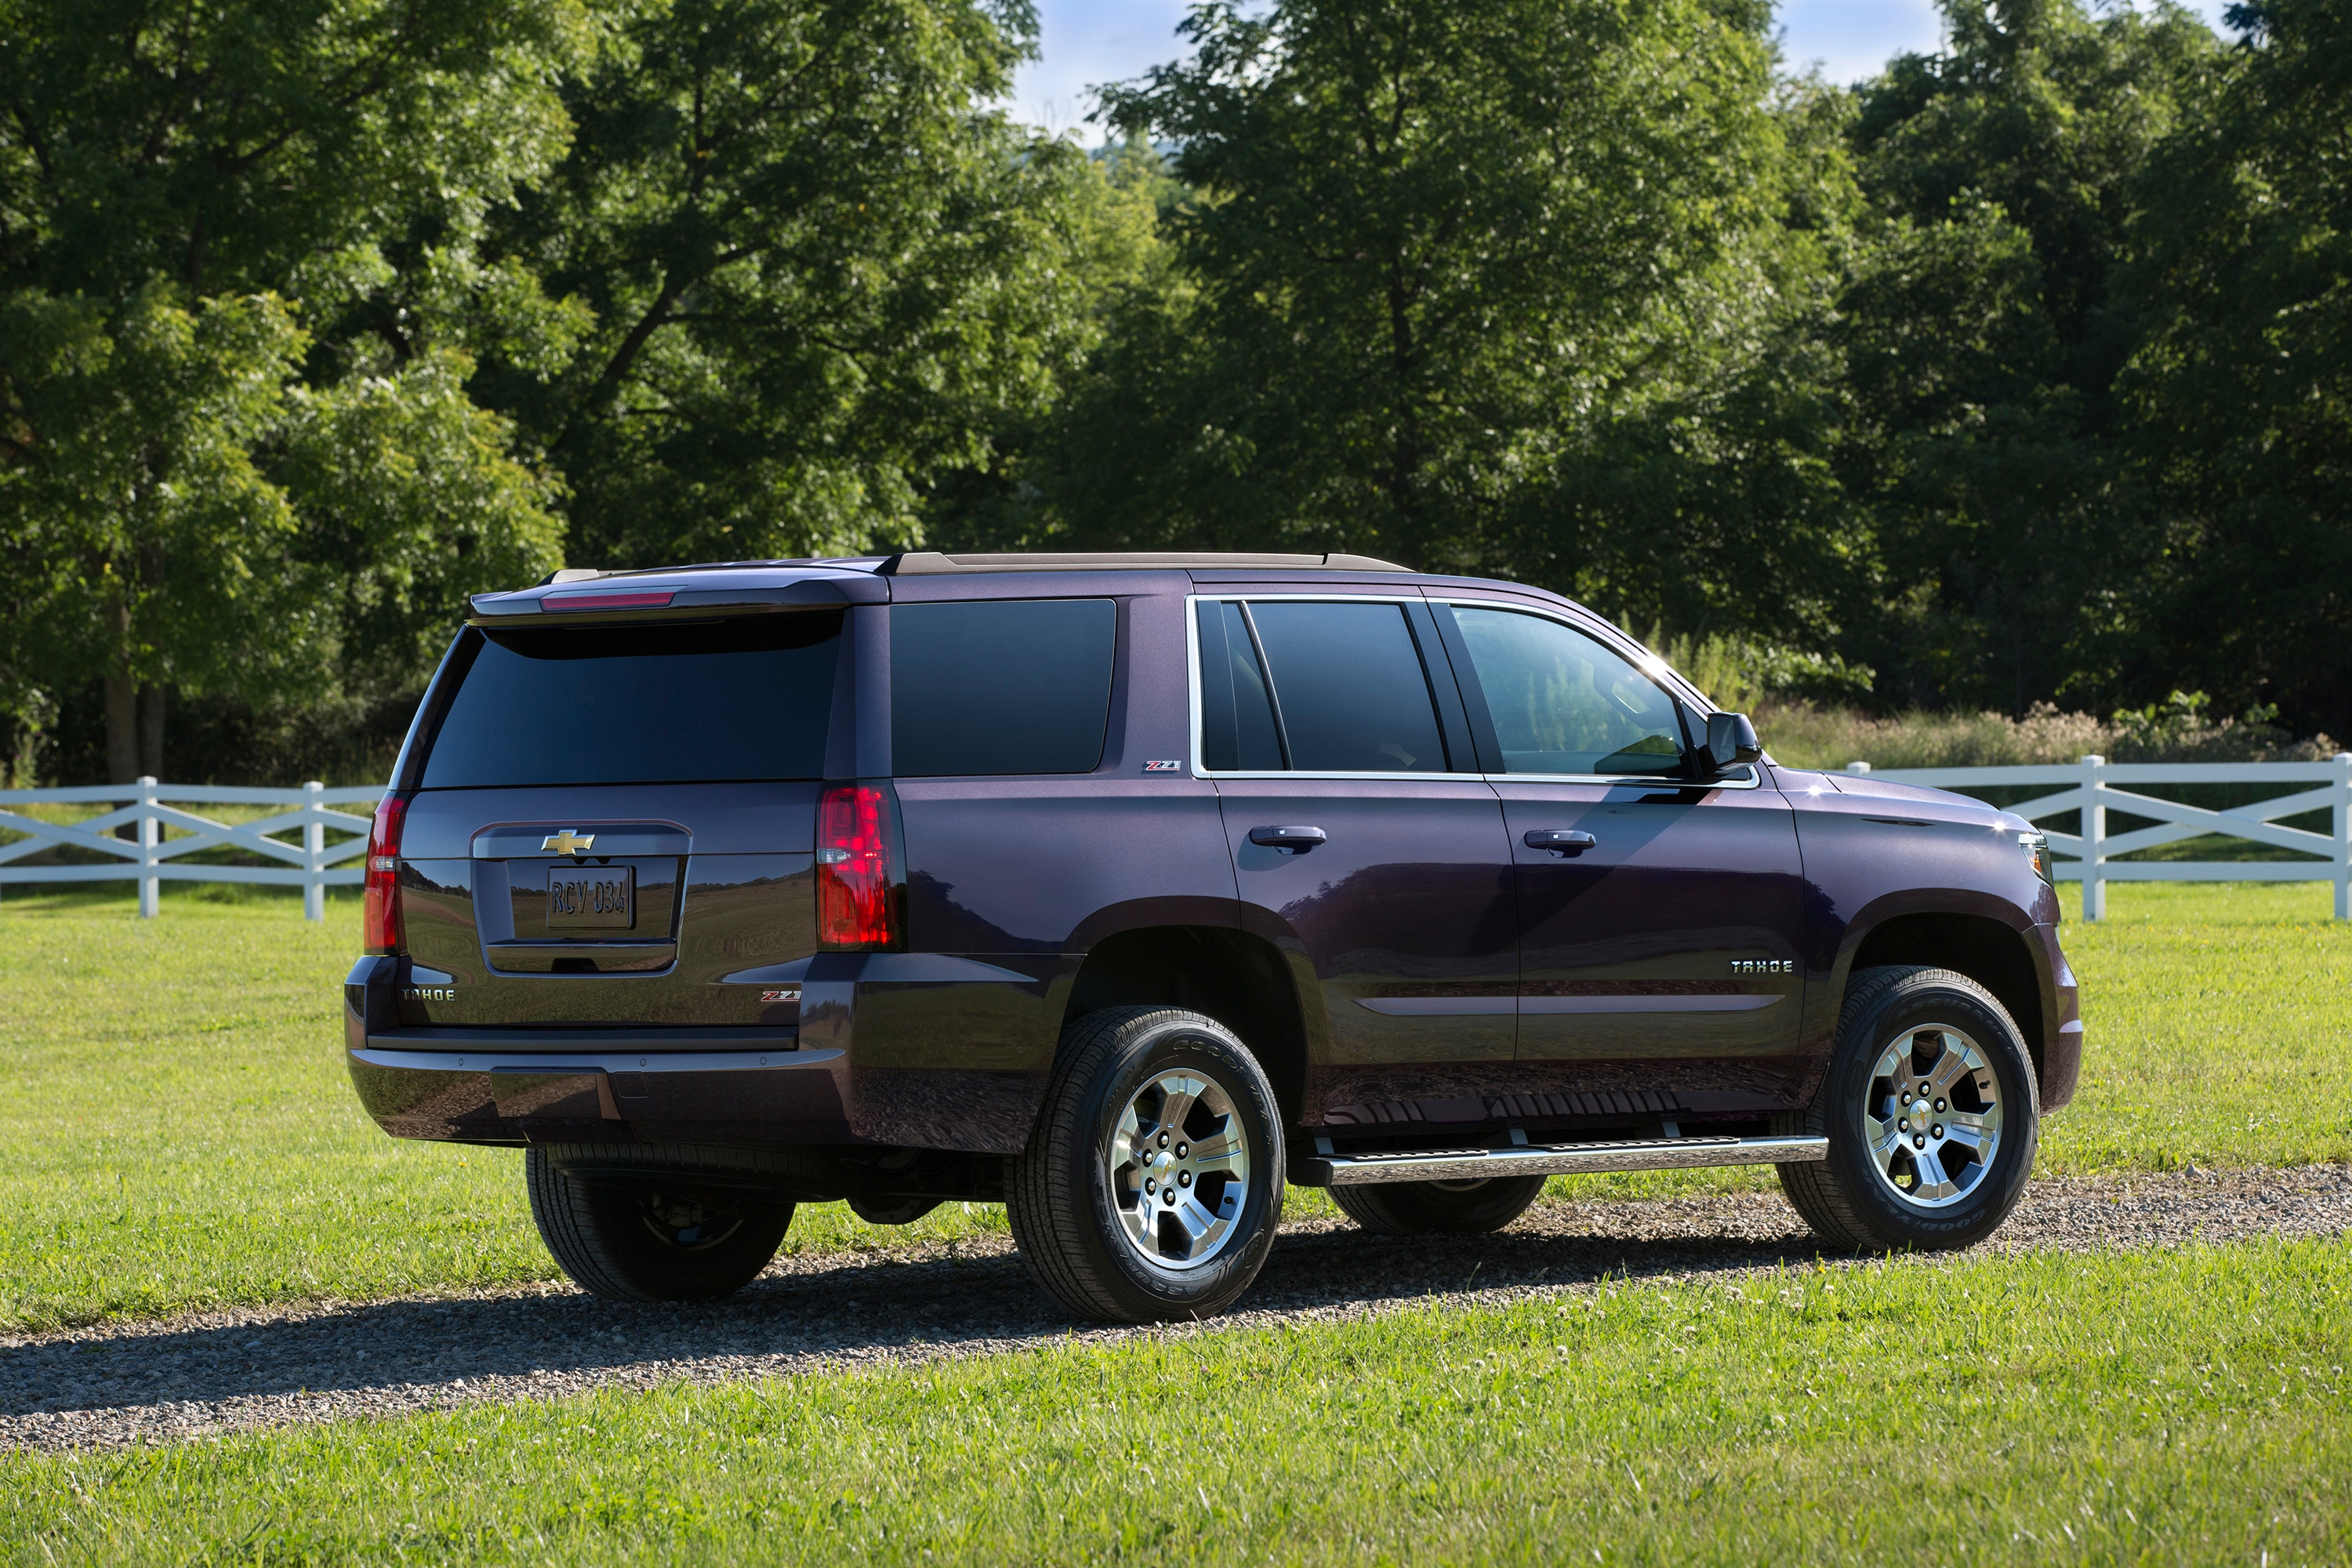 2015 Chevy Tahoe For Sale >> 2015 Chevy Tahoe For Sale Car Release And Specs 2018 2019